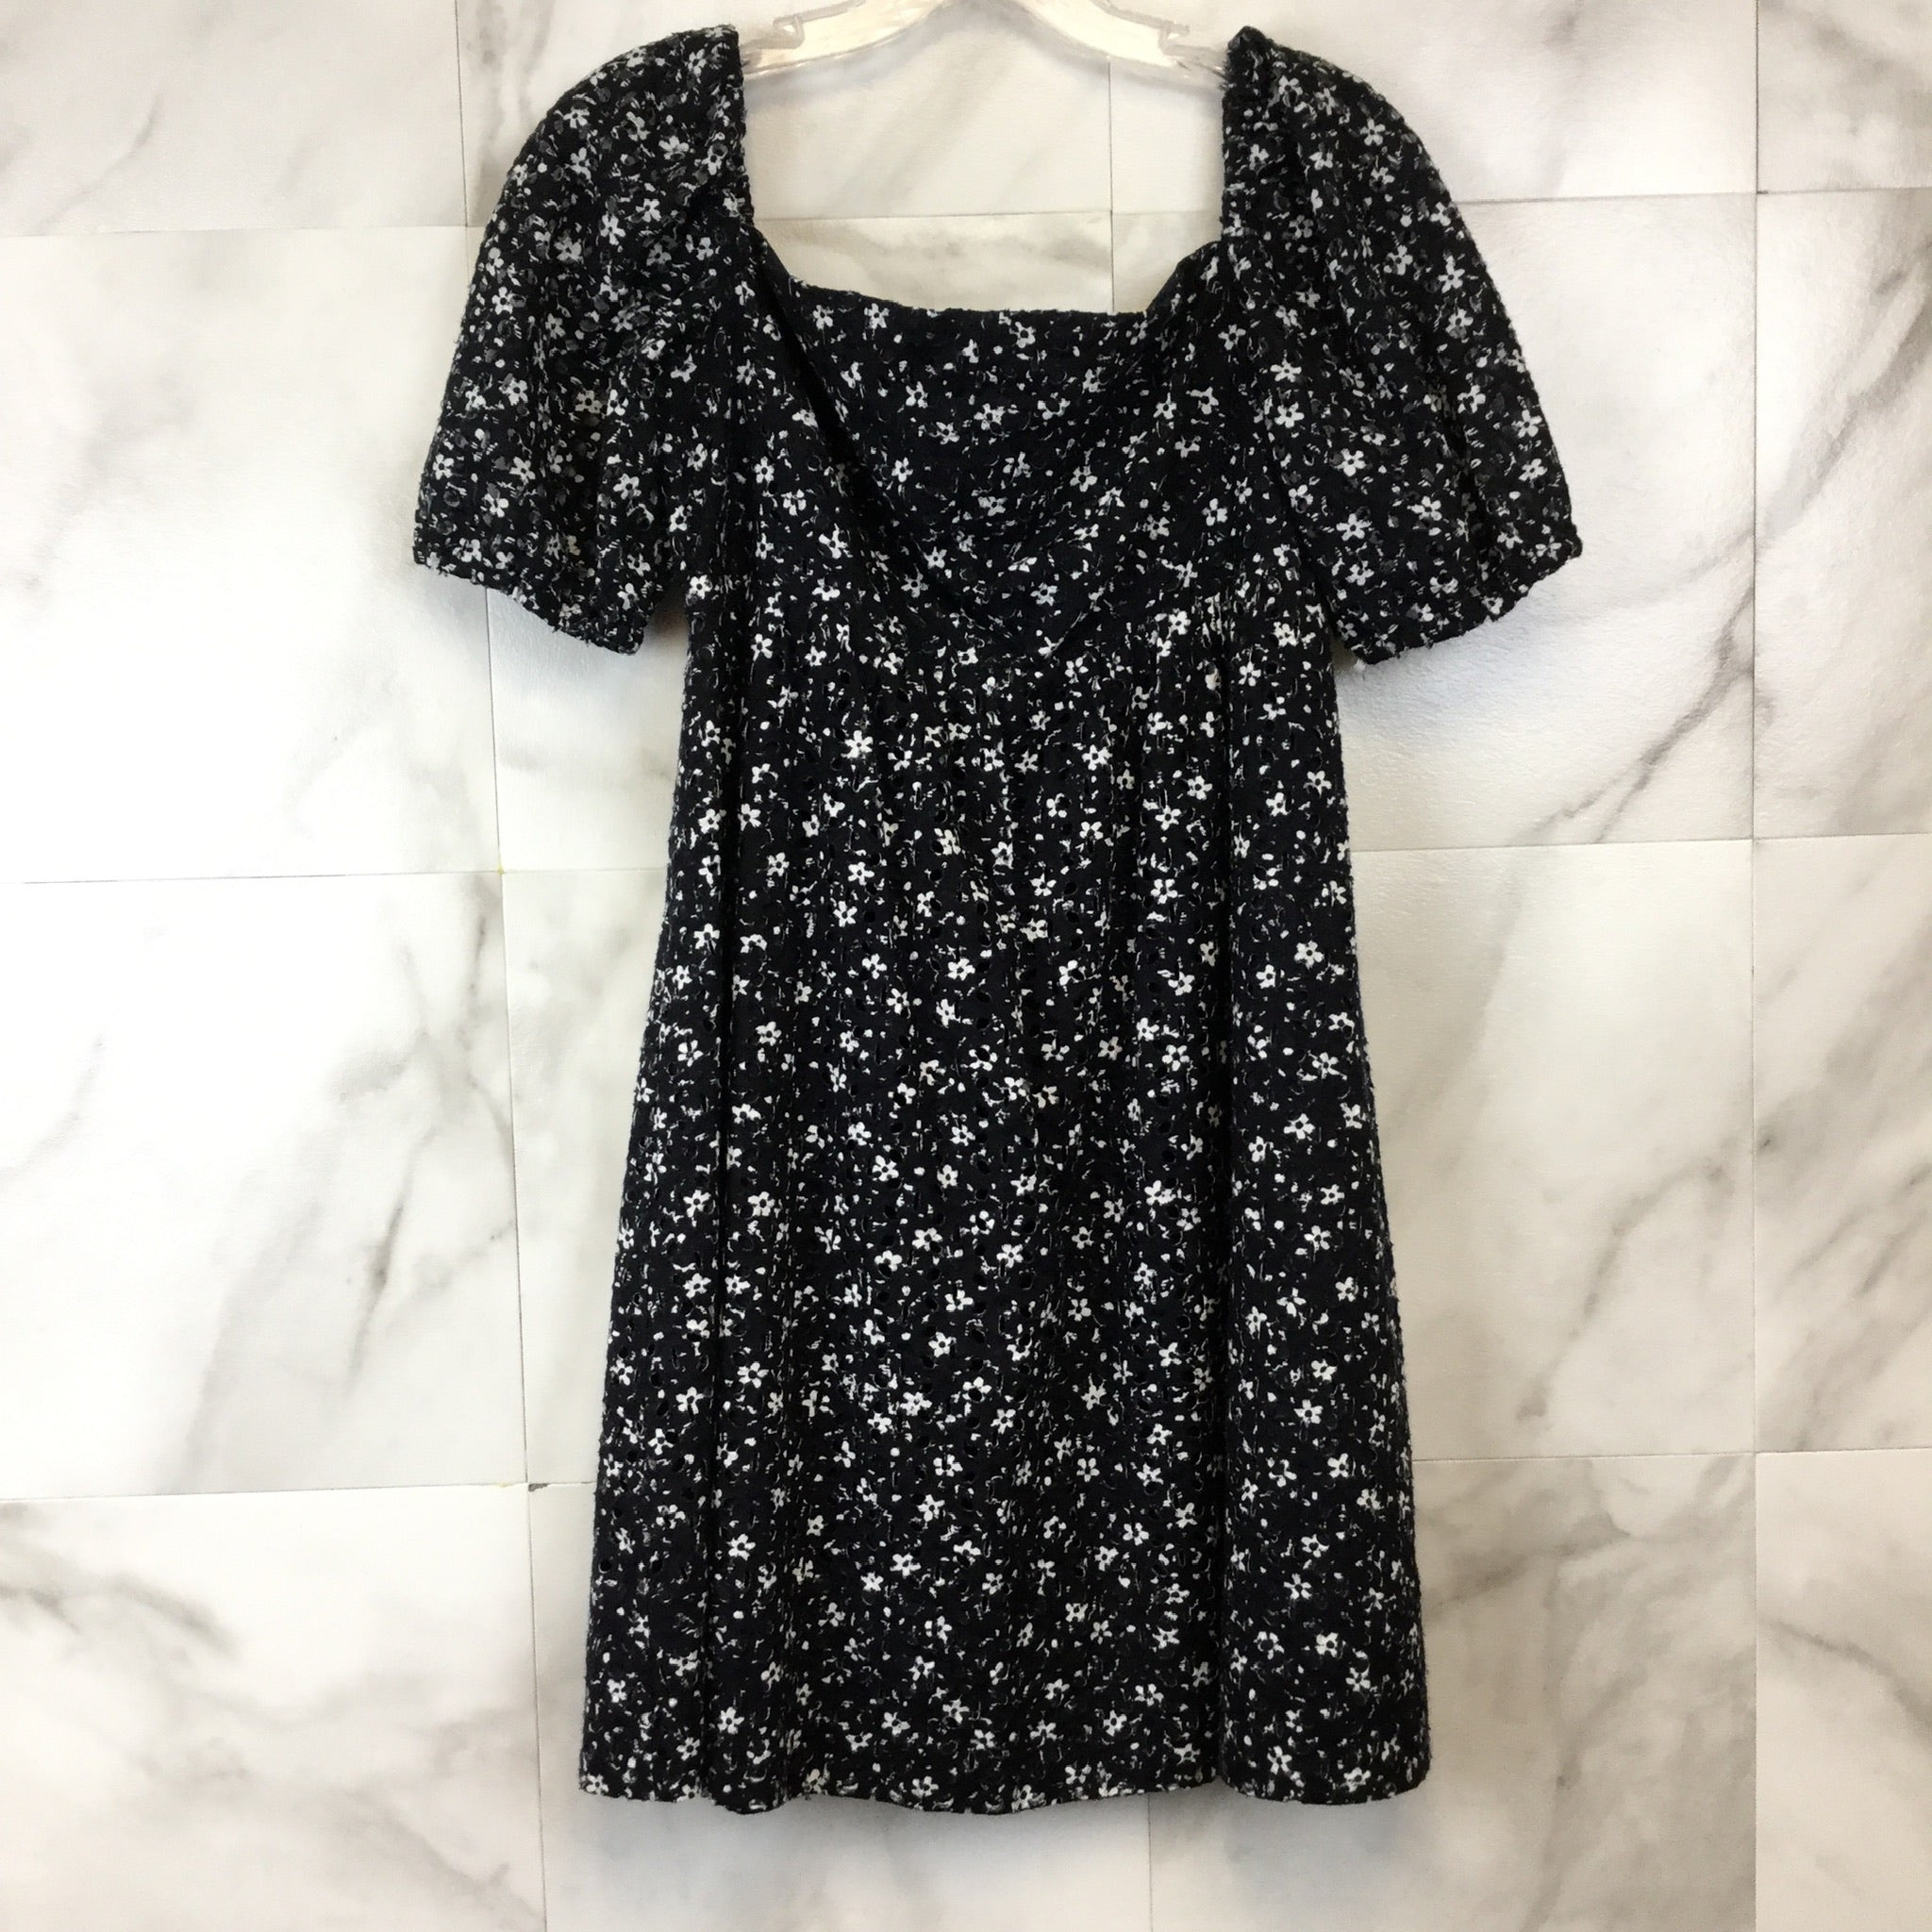 Anthropologie Maeve Lillianne Floral Dress - size 6